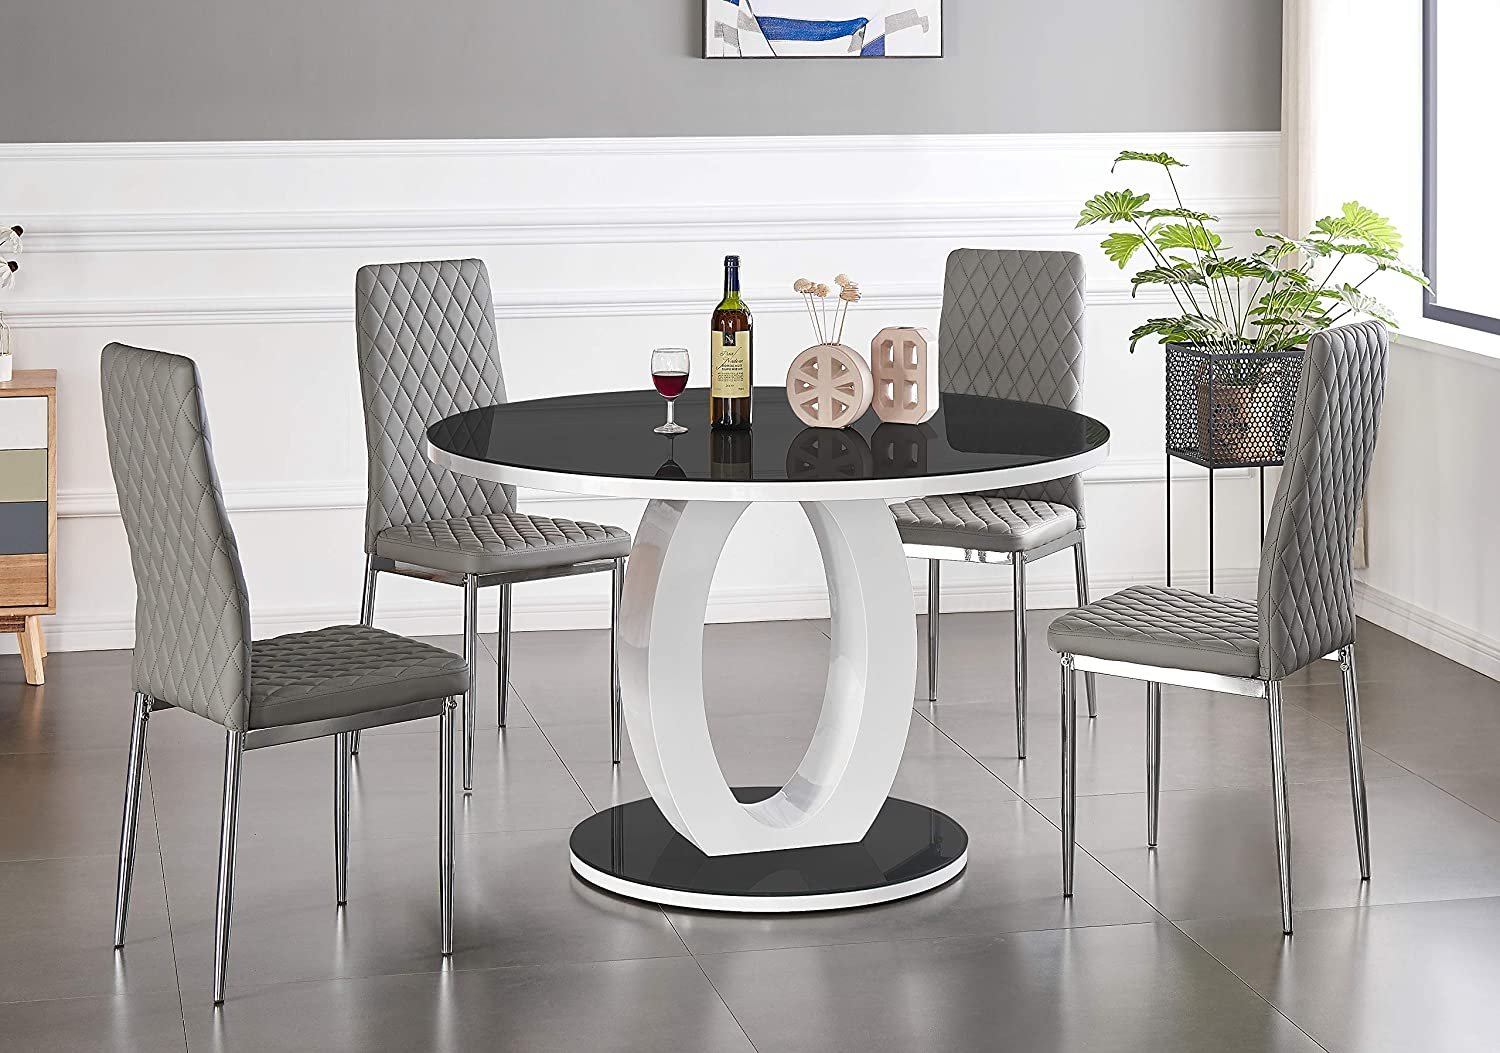 Dining Table + Black Milan Chairs, 4 Chairs Furniturebox UK Giovani Modern Stylish White//Black High Gloss And Glass Large Round Dining Table And 4//6 Contemporary Milan Chairs Set